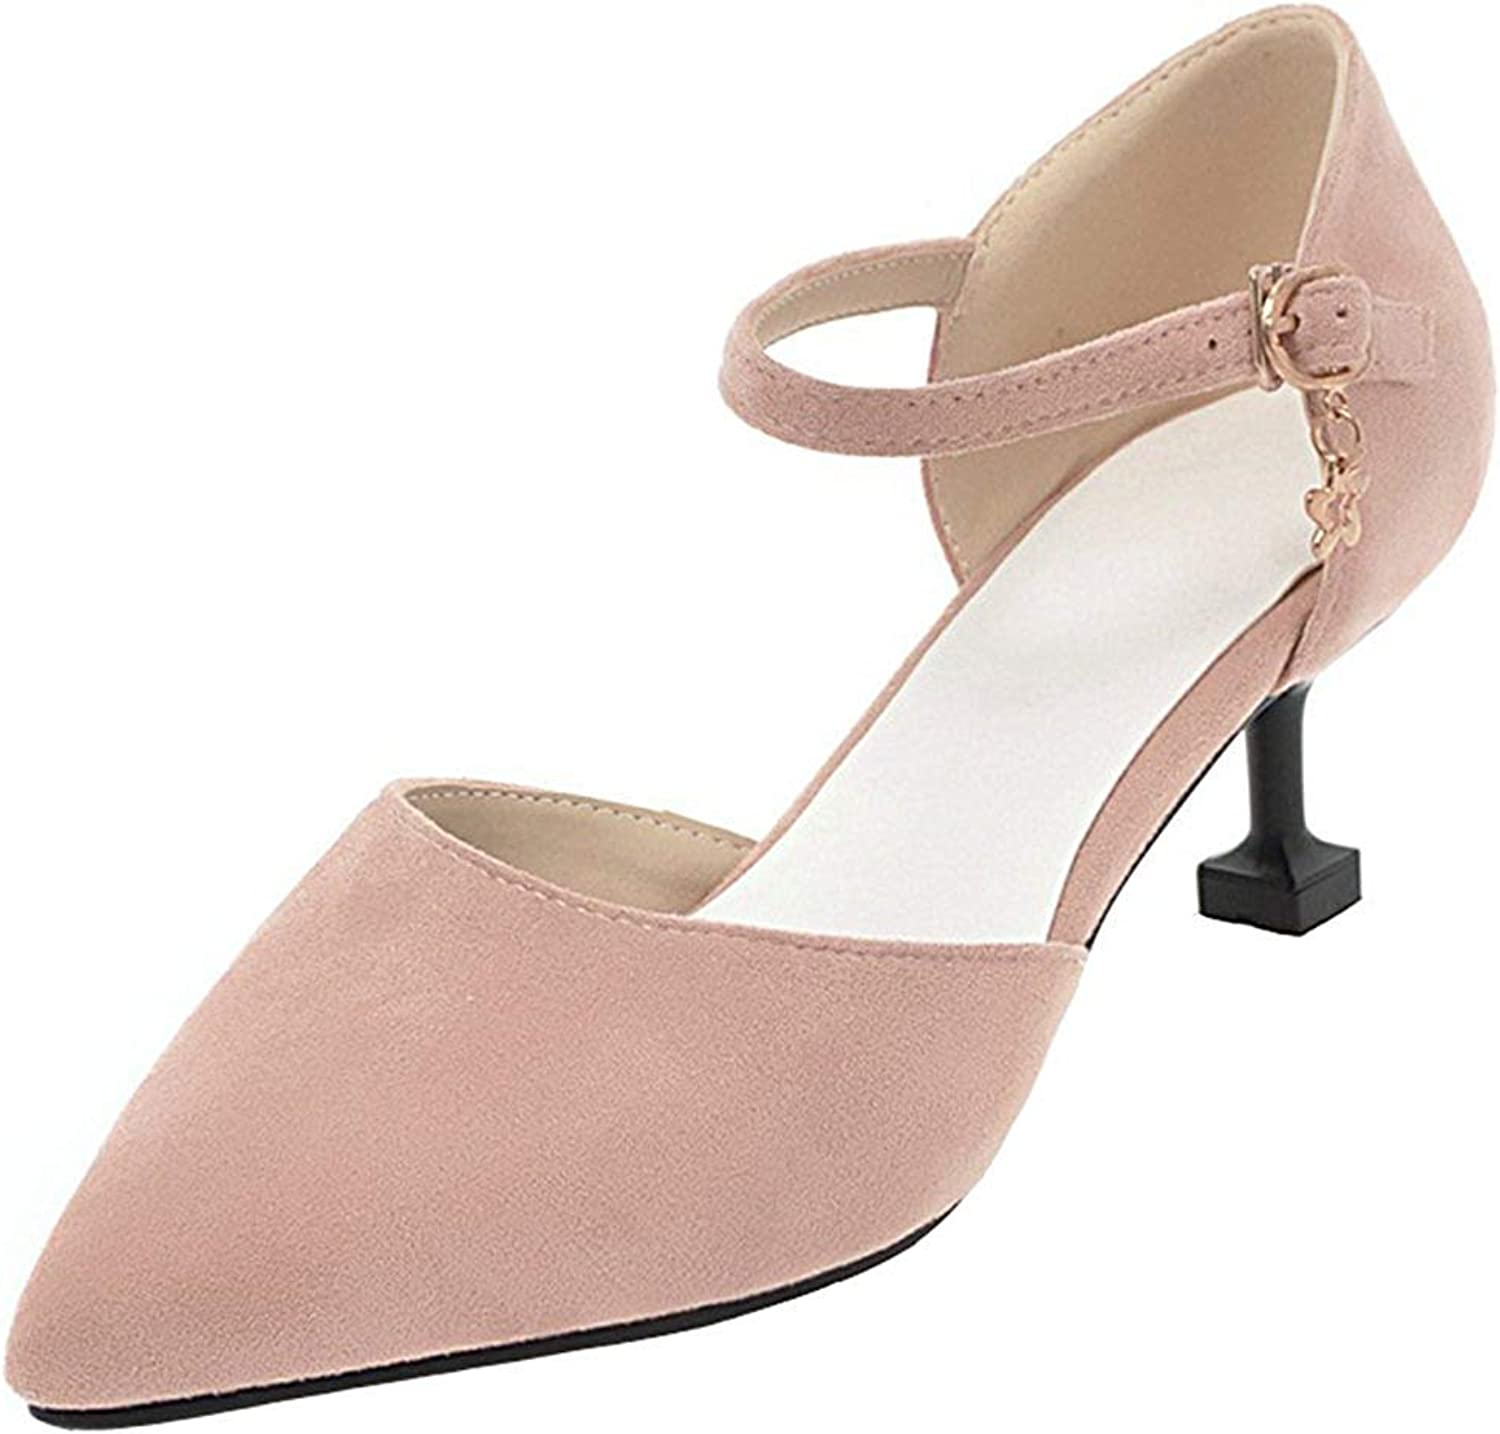 Gcanwea Women's Dressy Faux Suede Buckle Ankle Strap Pointed Toe Kitten Heels Sandals Casual Simple Ladies Stylish Classic Skinny Breathable Comfortable Sexy Elegant Flexibility Pink 5 M US Sandals